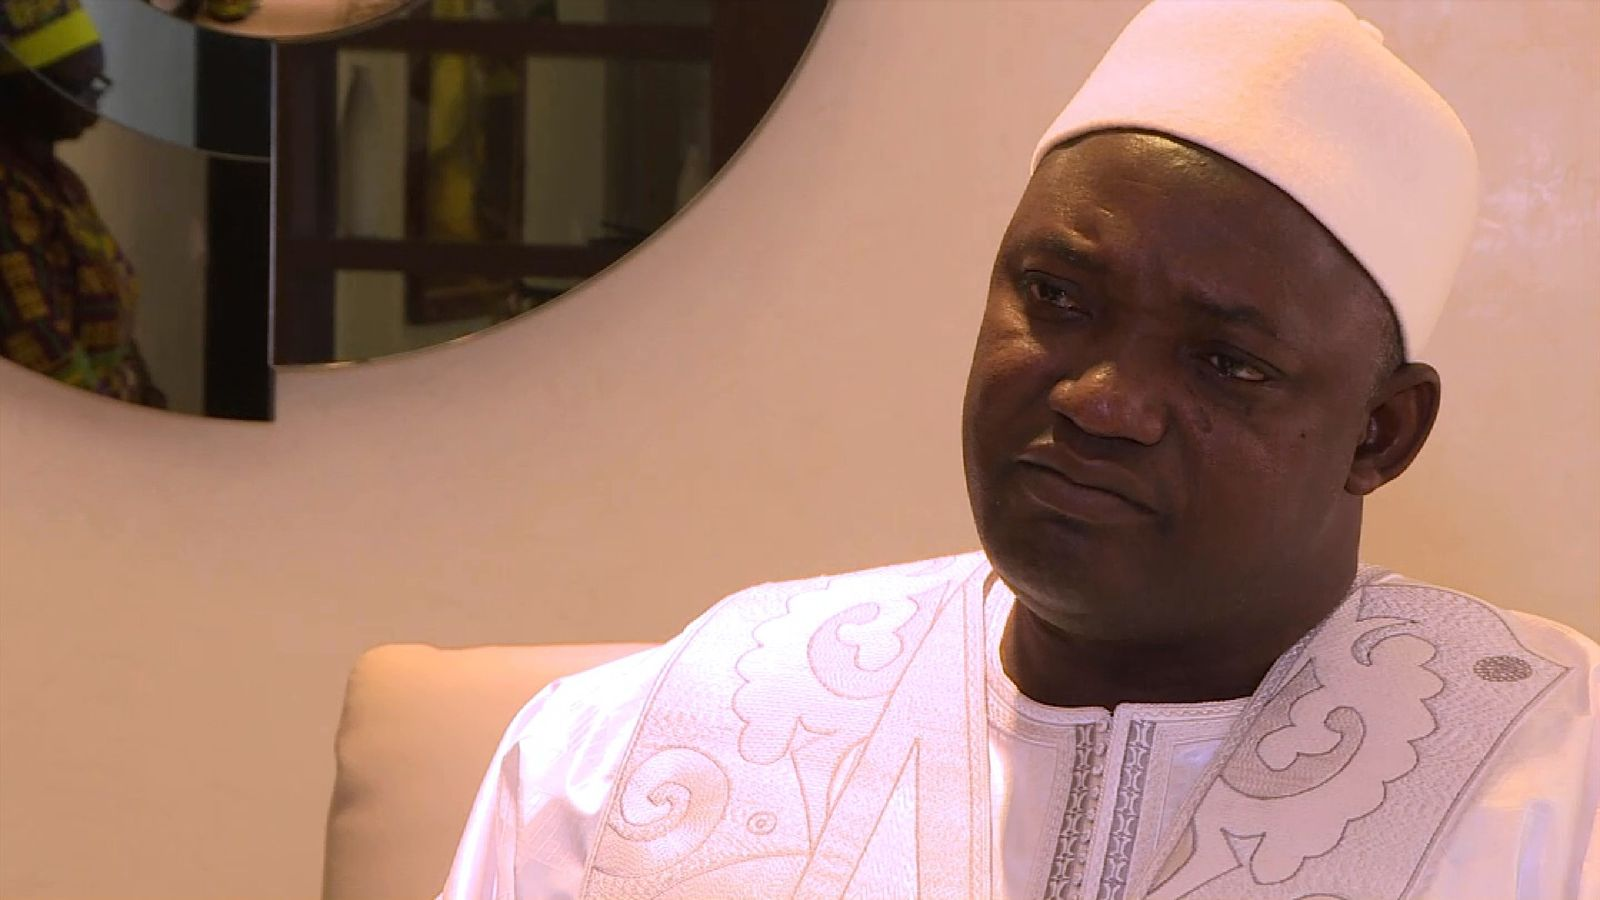 The new President of The Gambia on its relationship with the UK